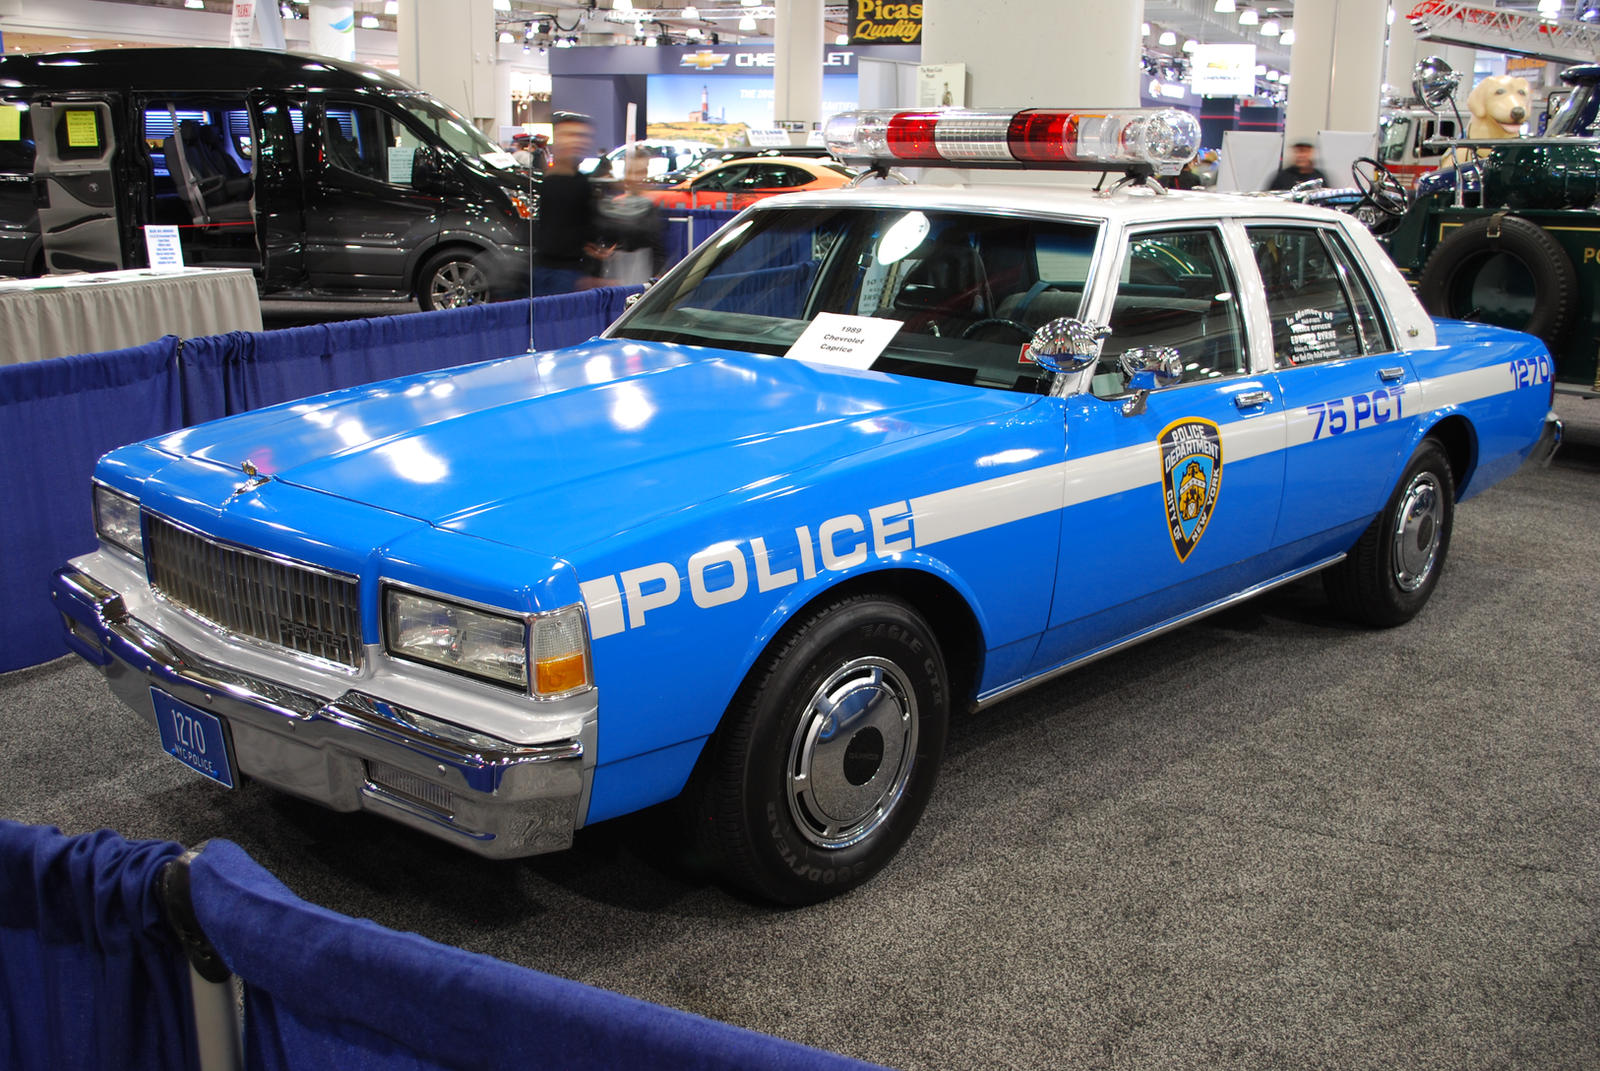 1989 CHEVROLET Caprice NYPD Police Car (II) by HardRocker78 on ...